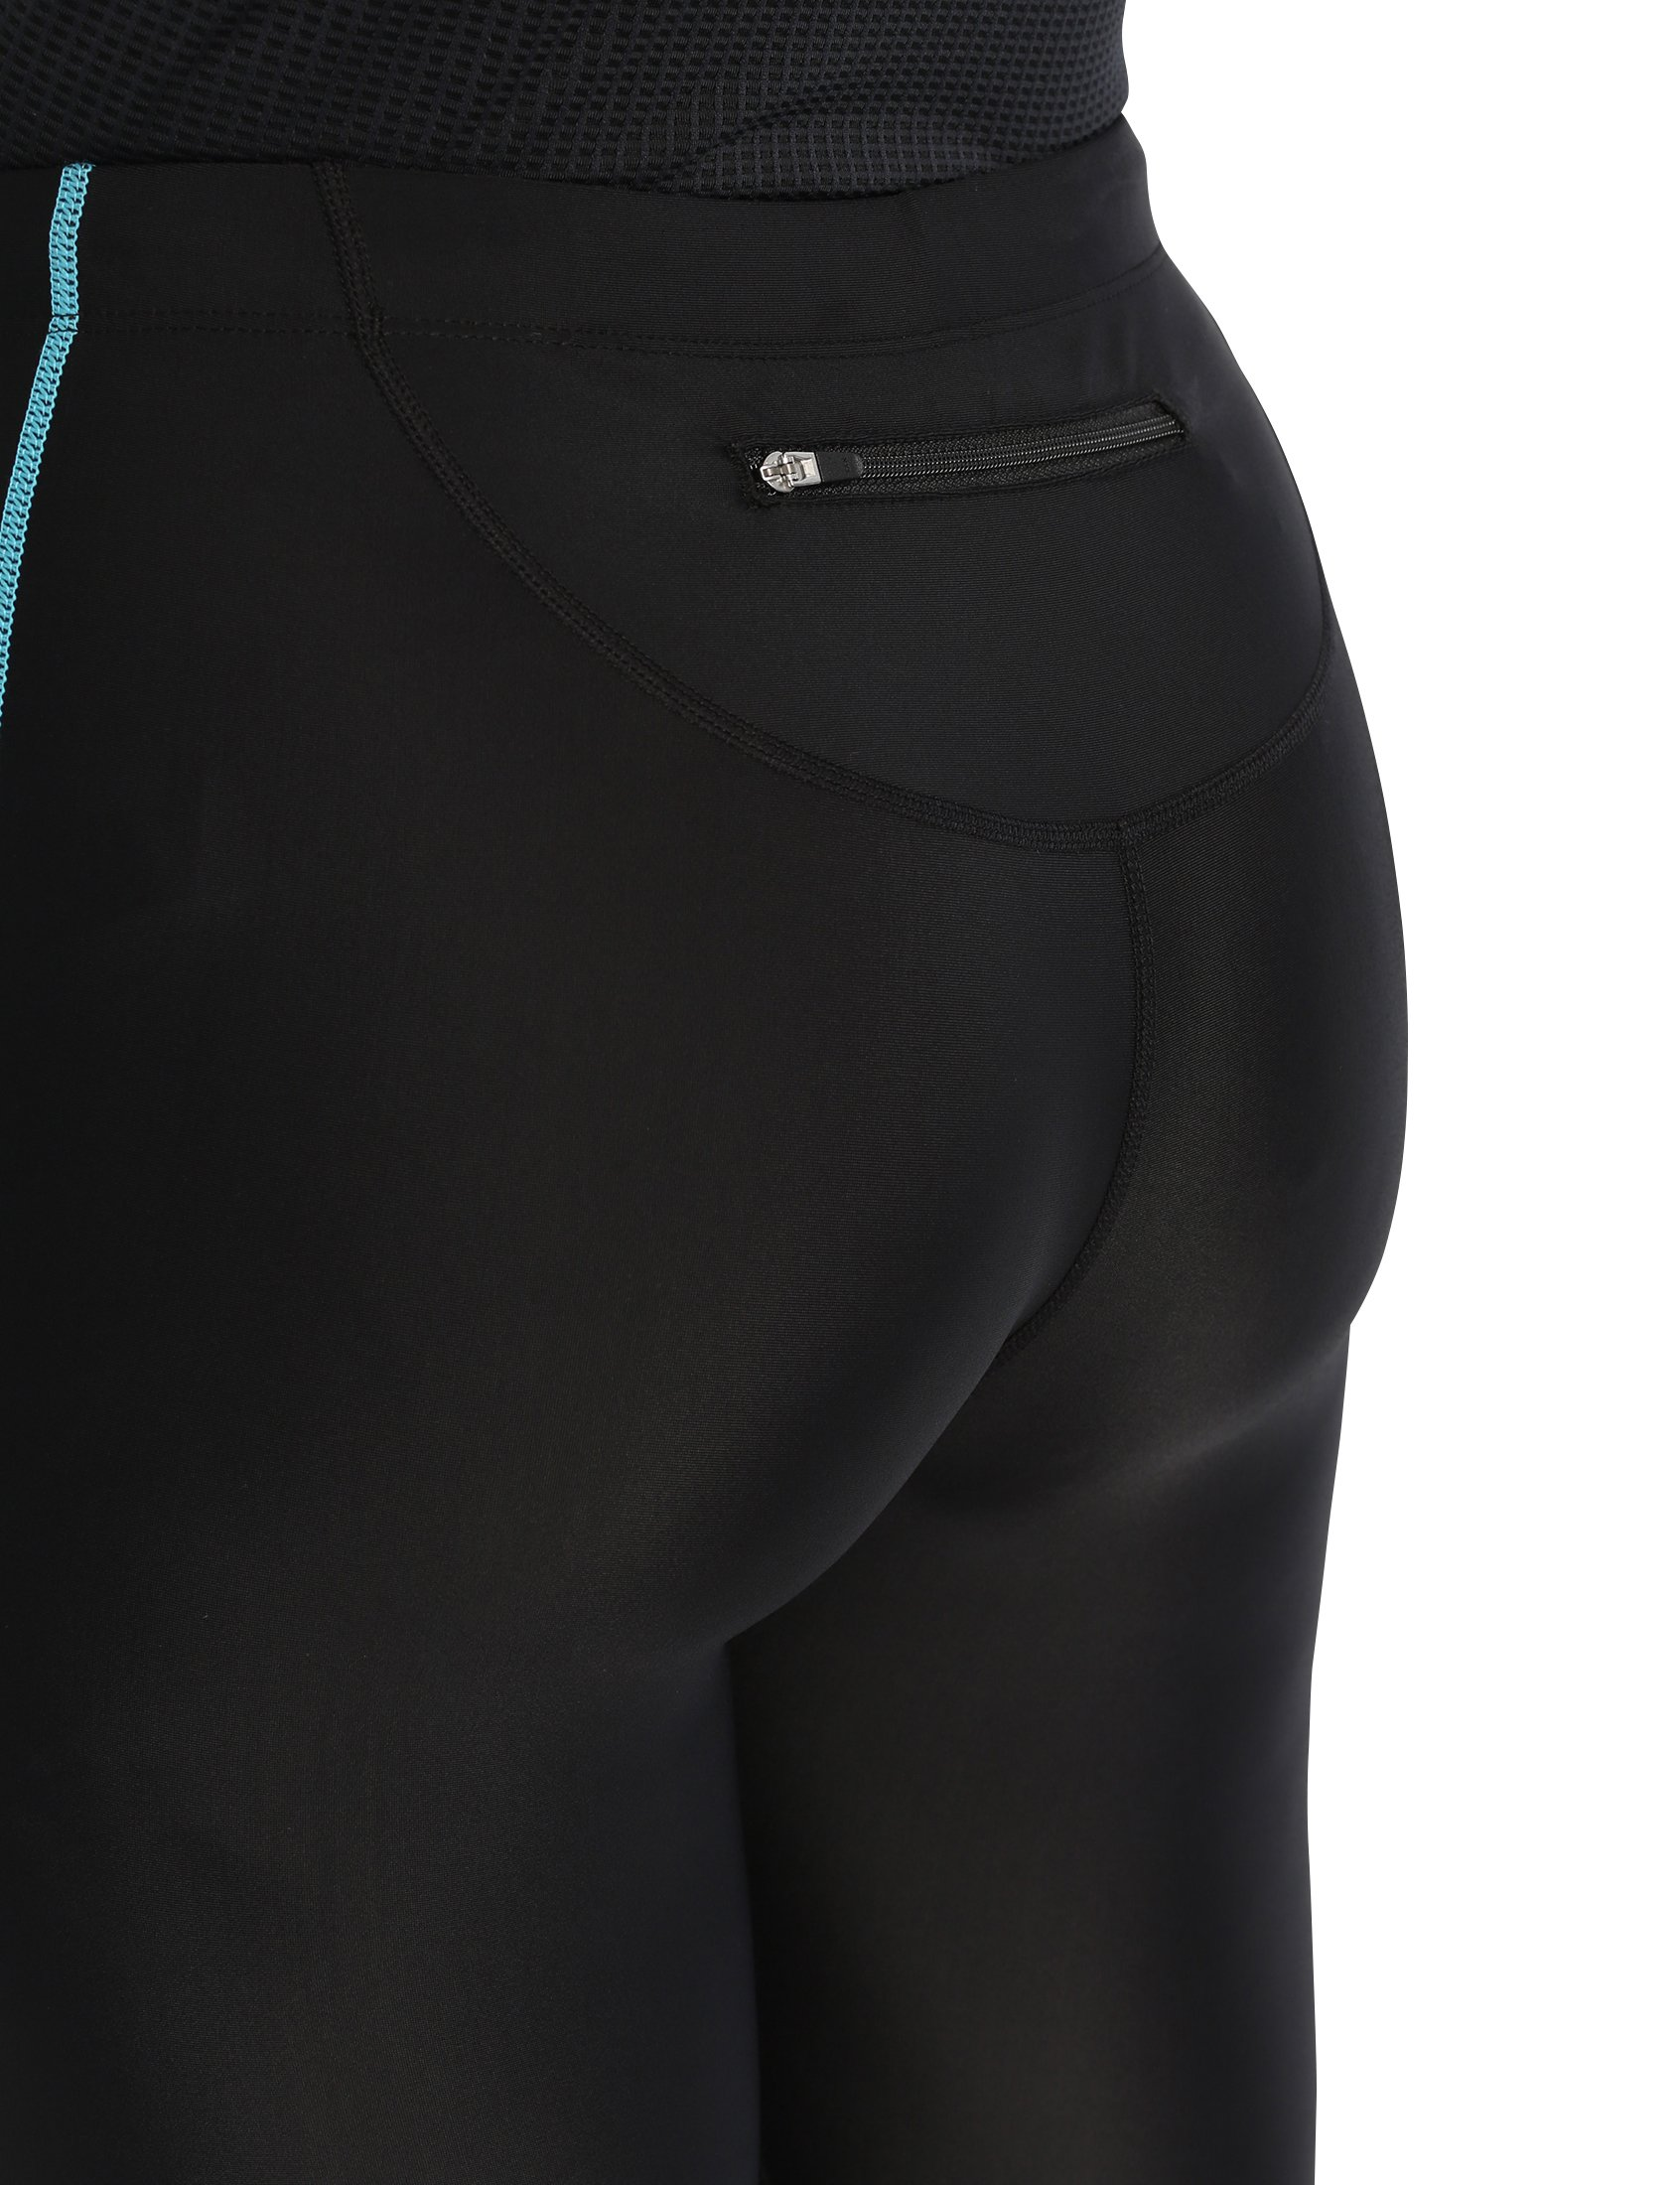 81h3e2bTzqL - Ultrasport Women's Running Pants Capri with Compression Effect & Quick-Dry-Function